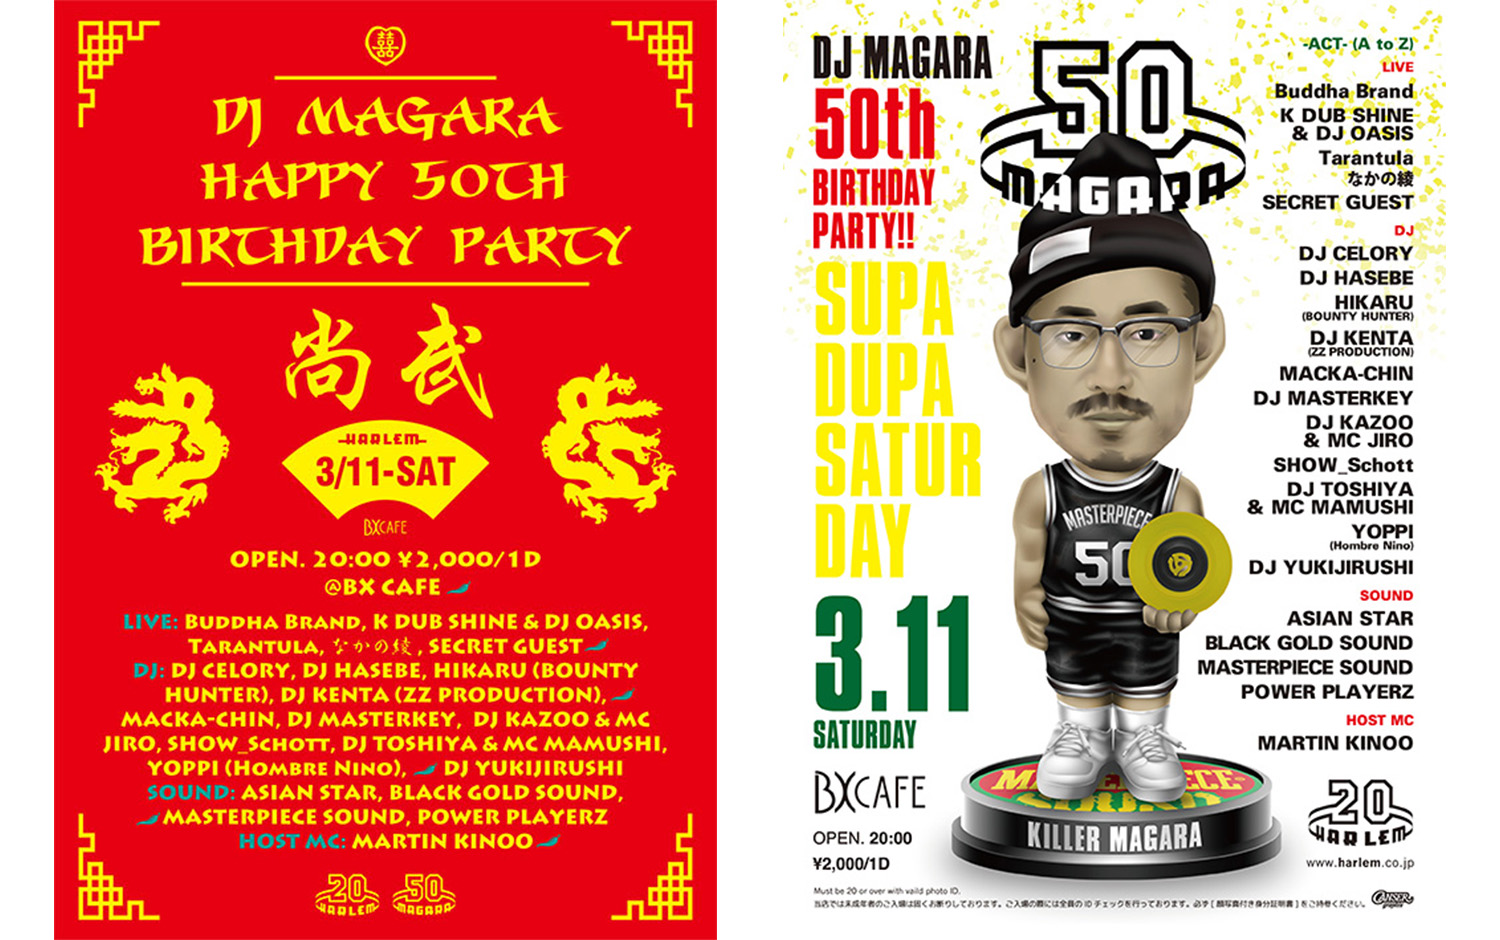 dj-magara-50th-bdp-1